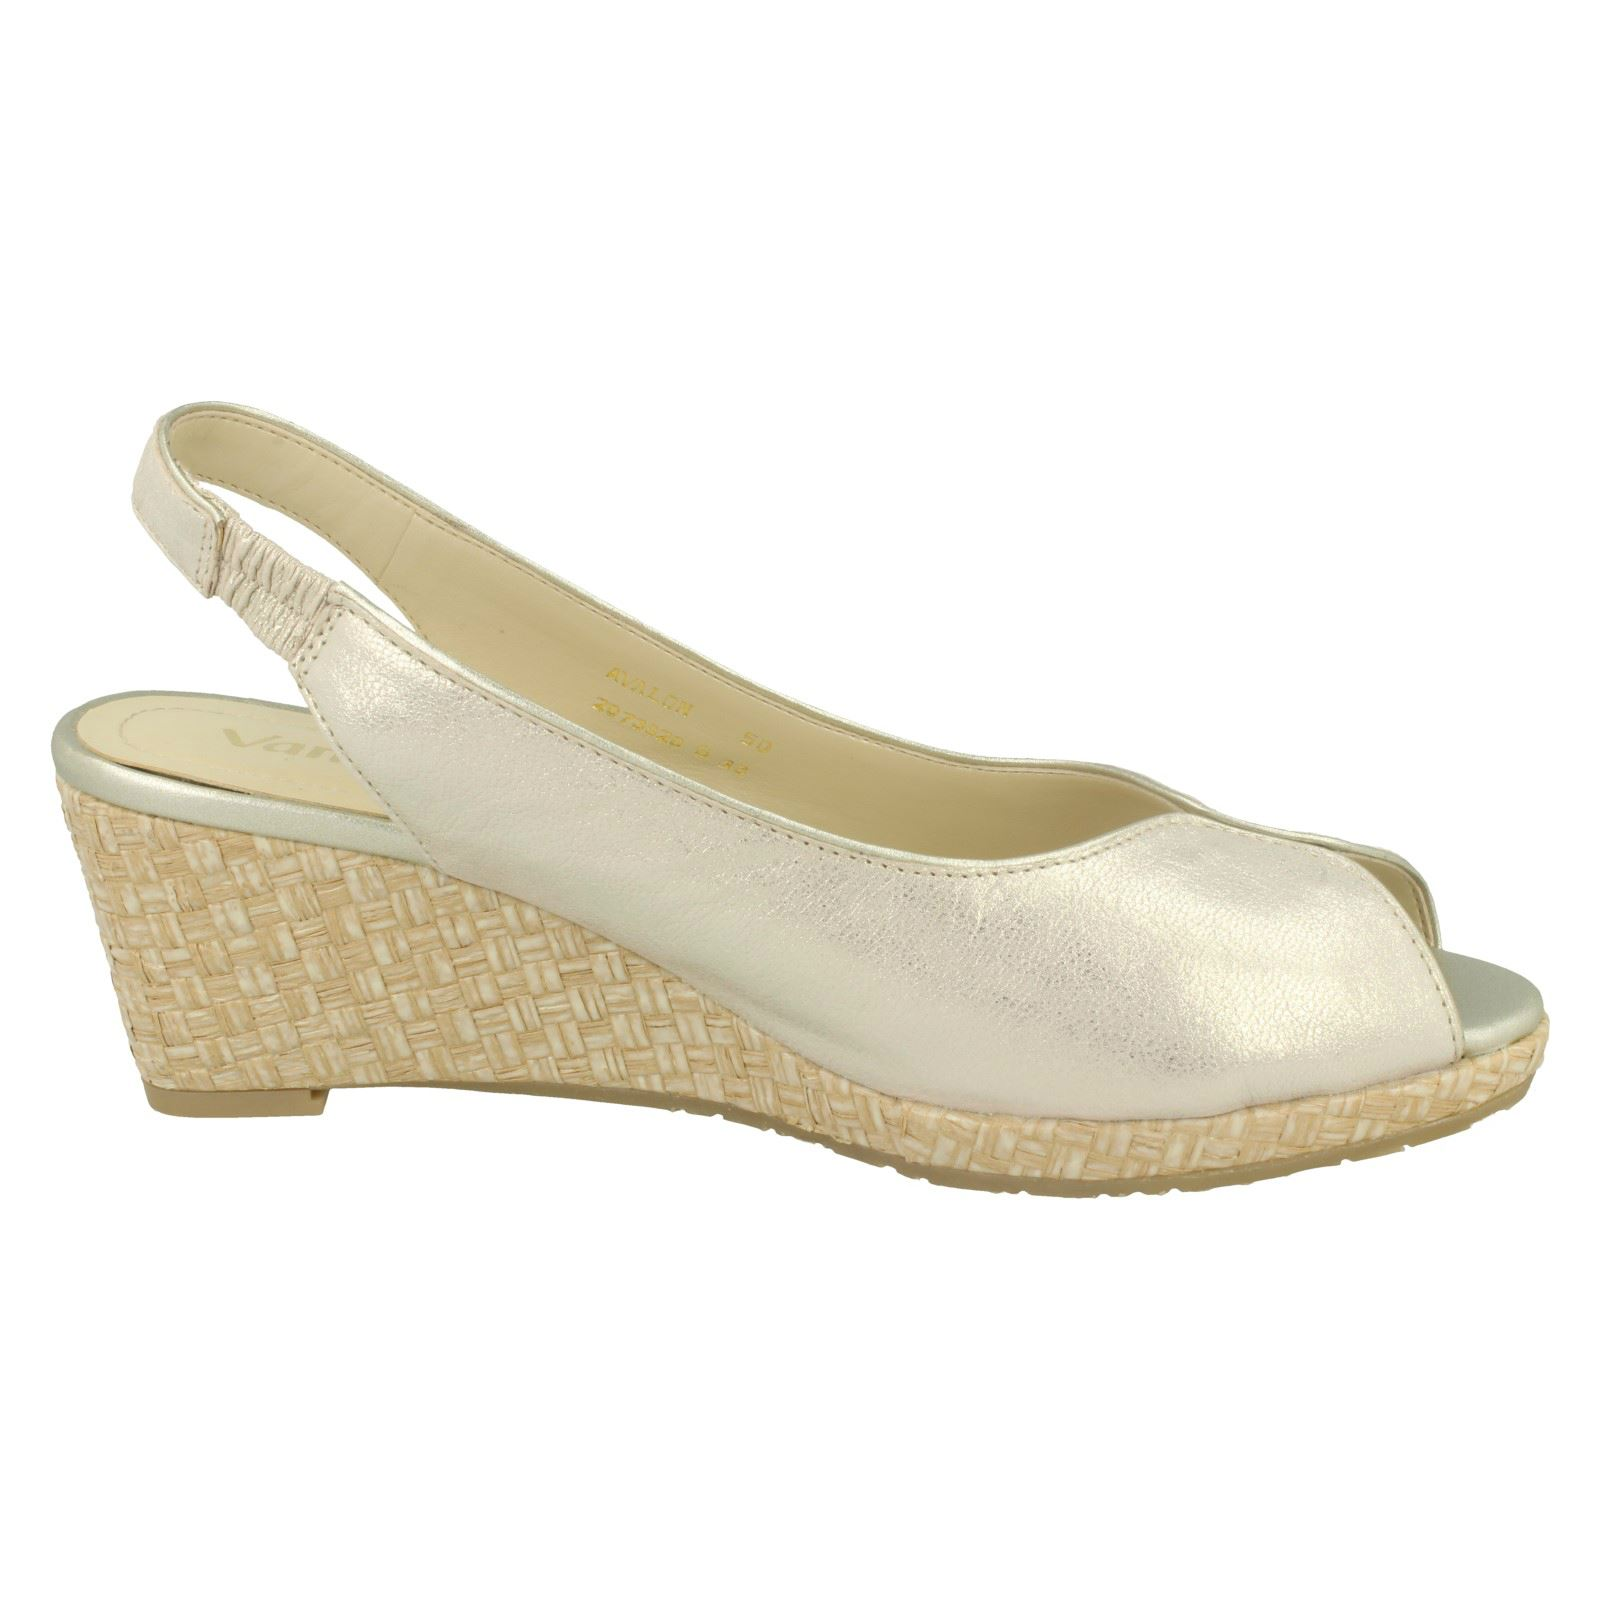 Ladies-Van-Dal-Leather-Wedge-Sandal-With-Woven-Detail-Avalon thumbnail 19